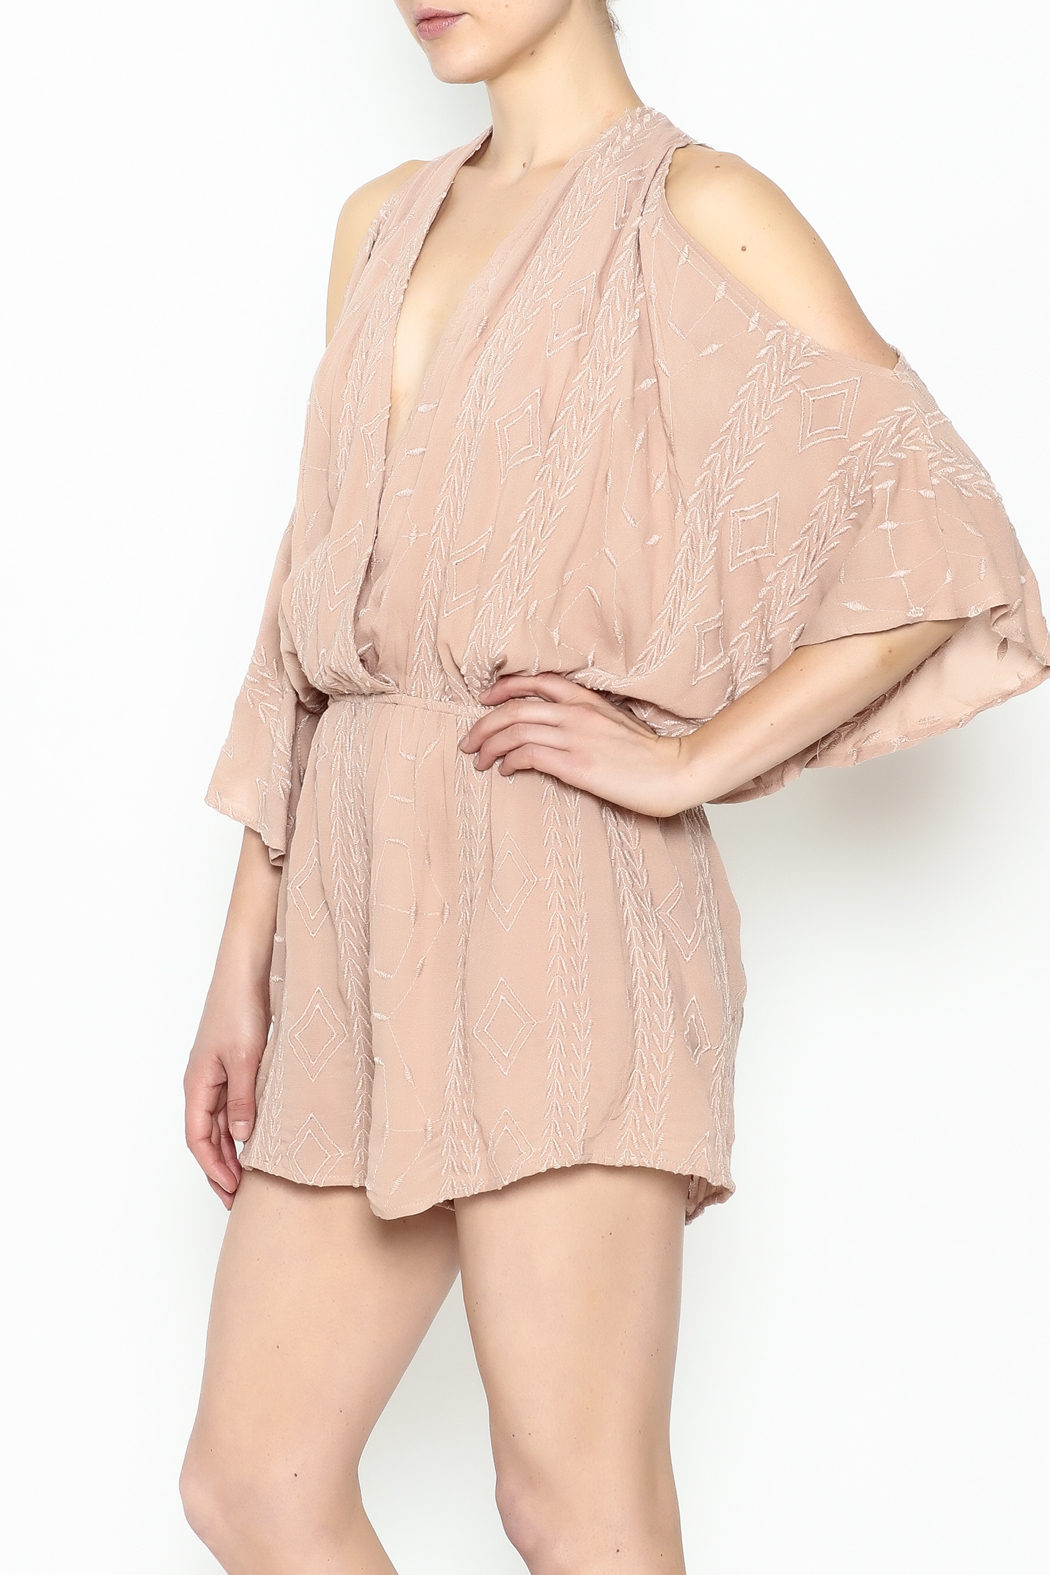 Audrey 3+1 Blush Embroidered Romper - Main Image